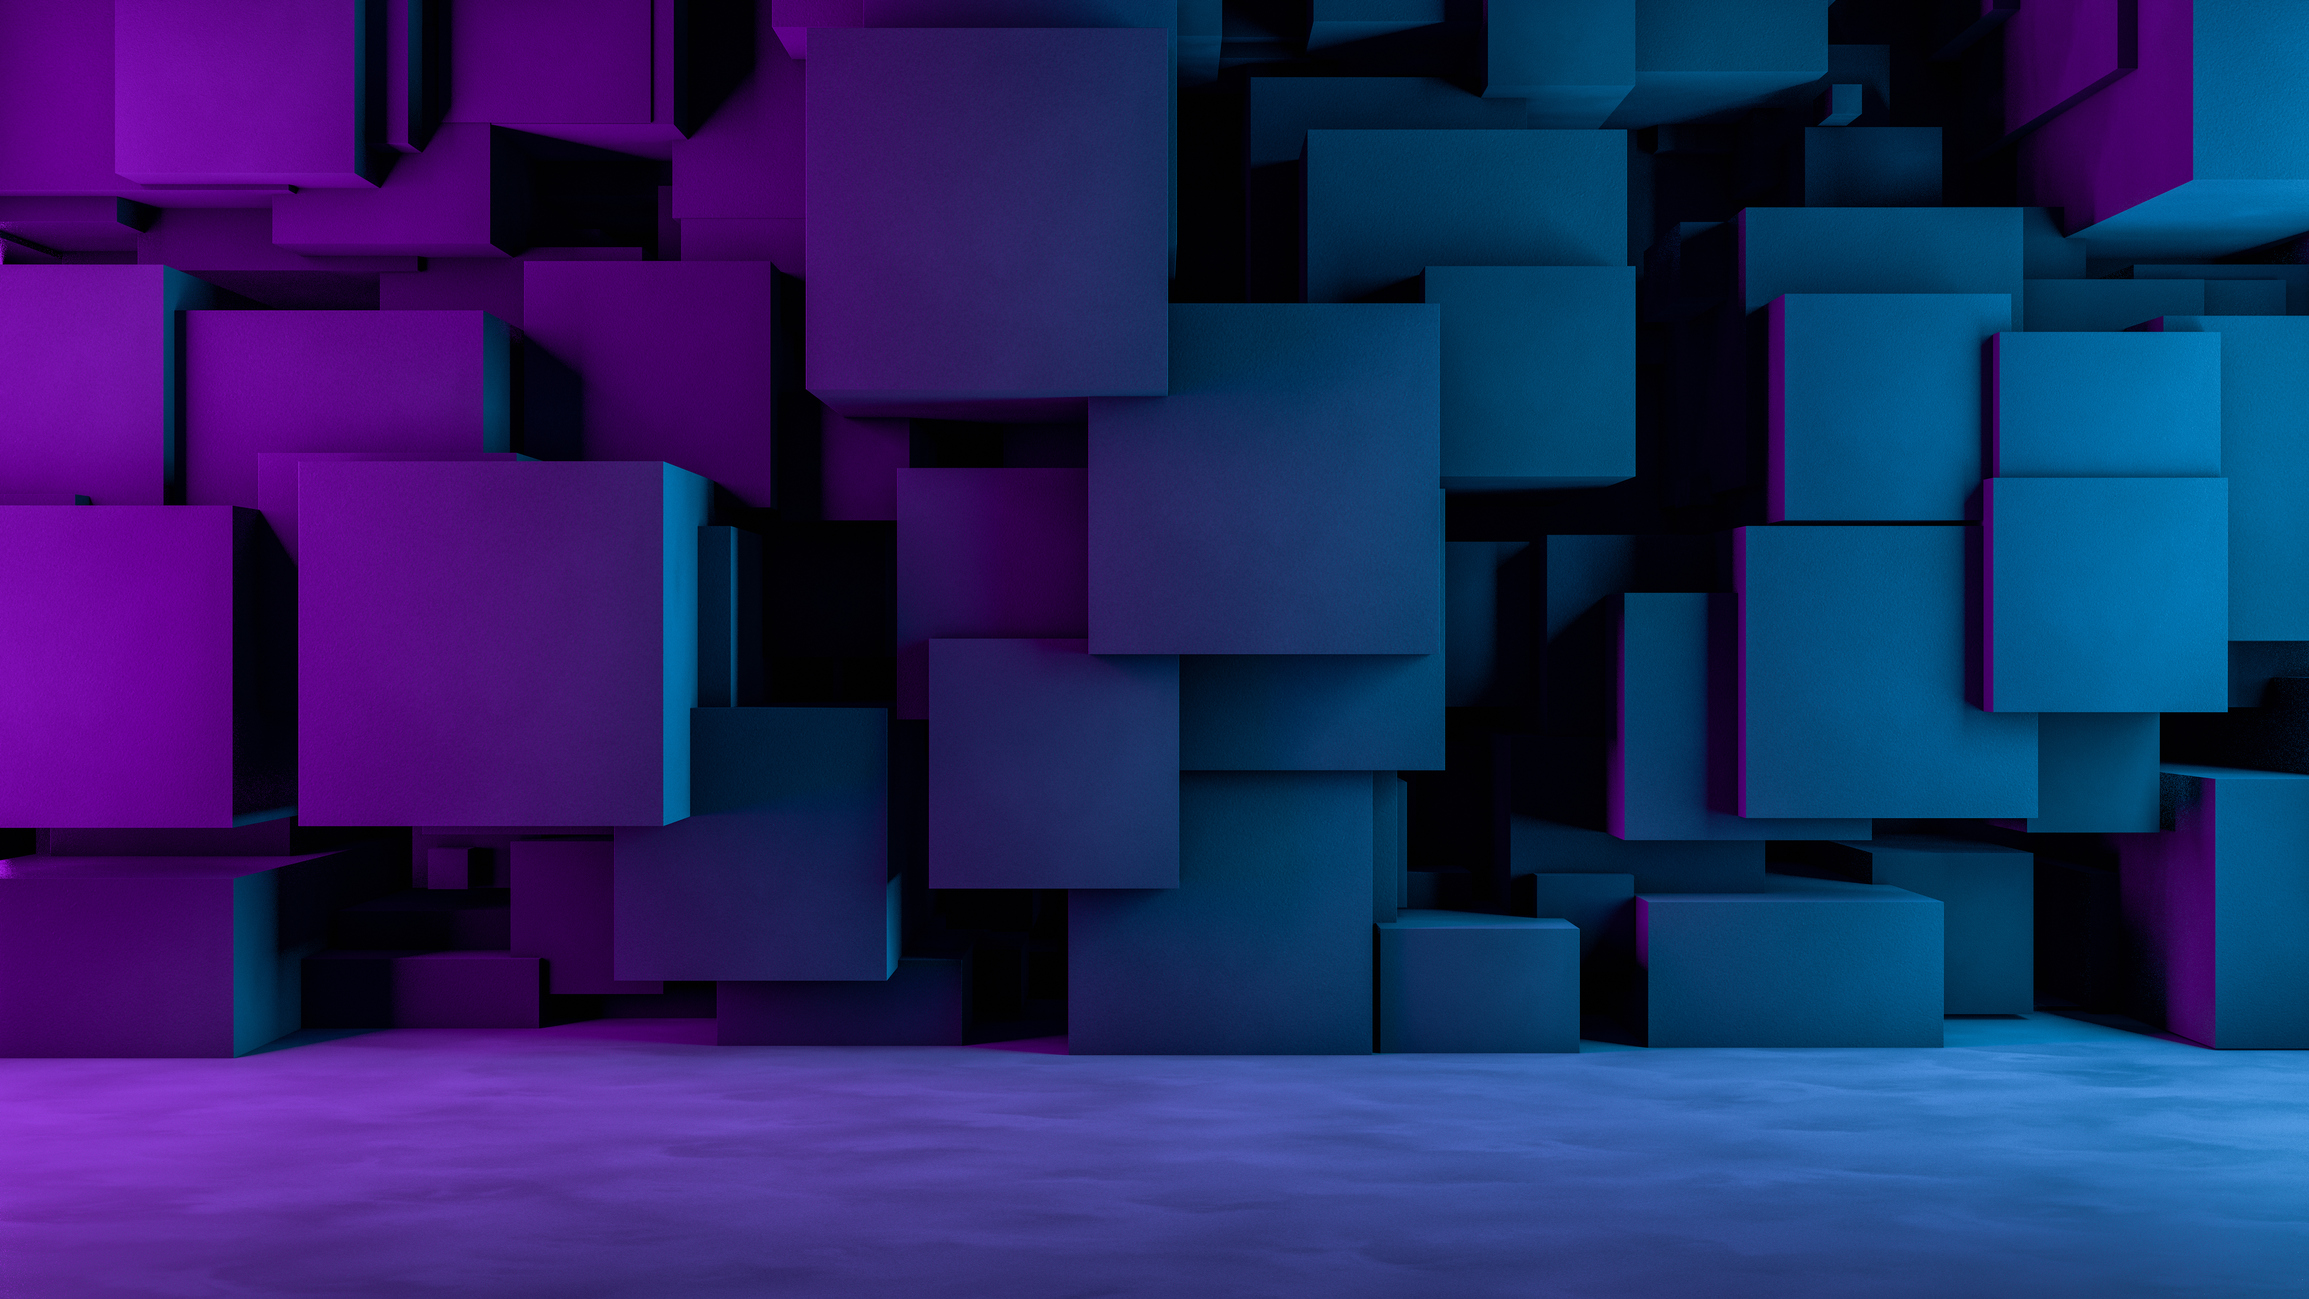 3d rendering of abstract concrete cubes. Architecture concept. Neon Lights.